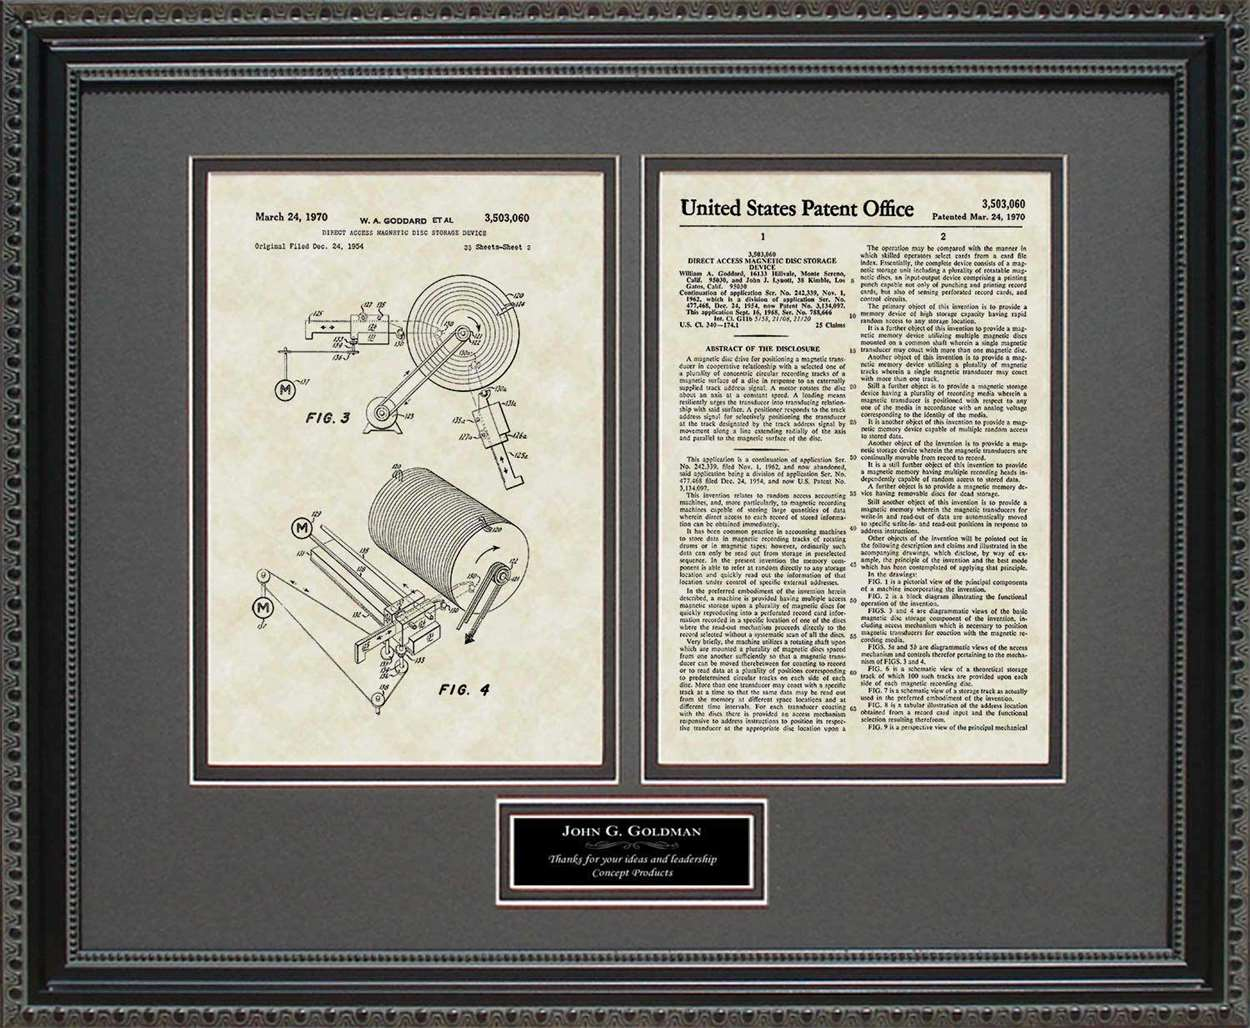 Personalized Disk Drive Patent, Art & Copy, Goddard, 1970